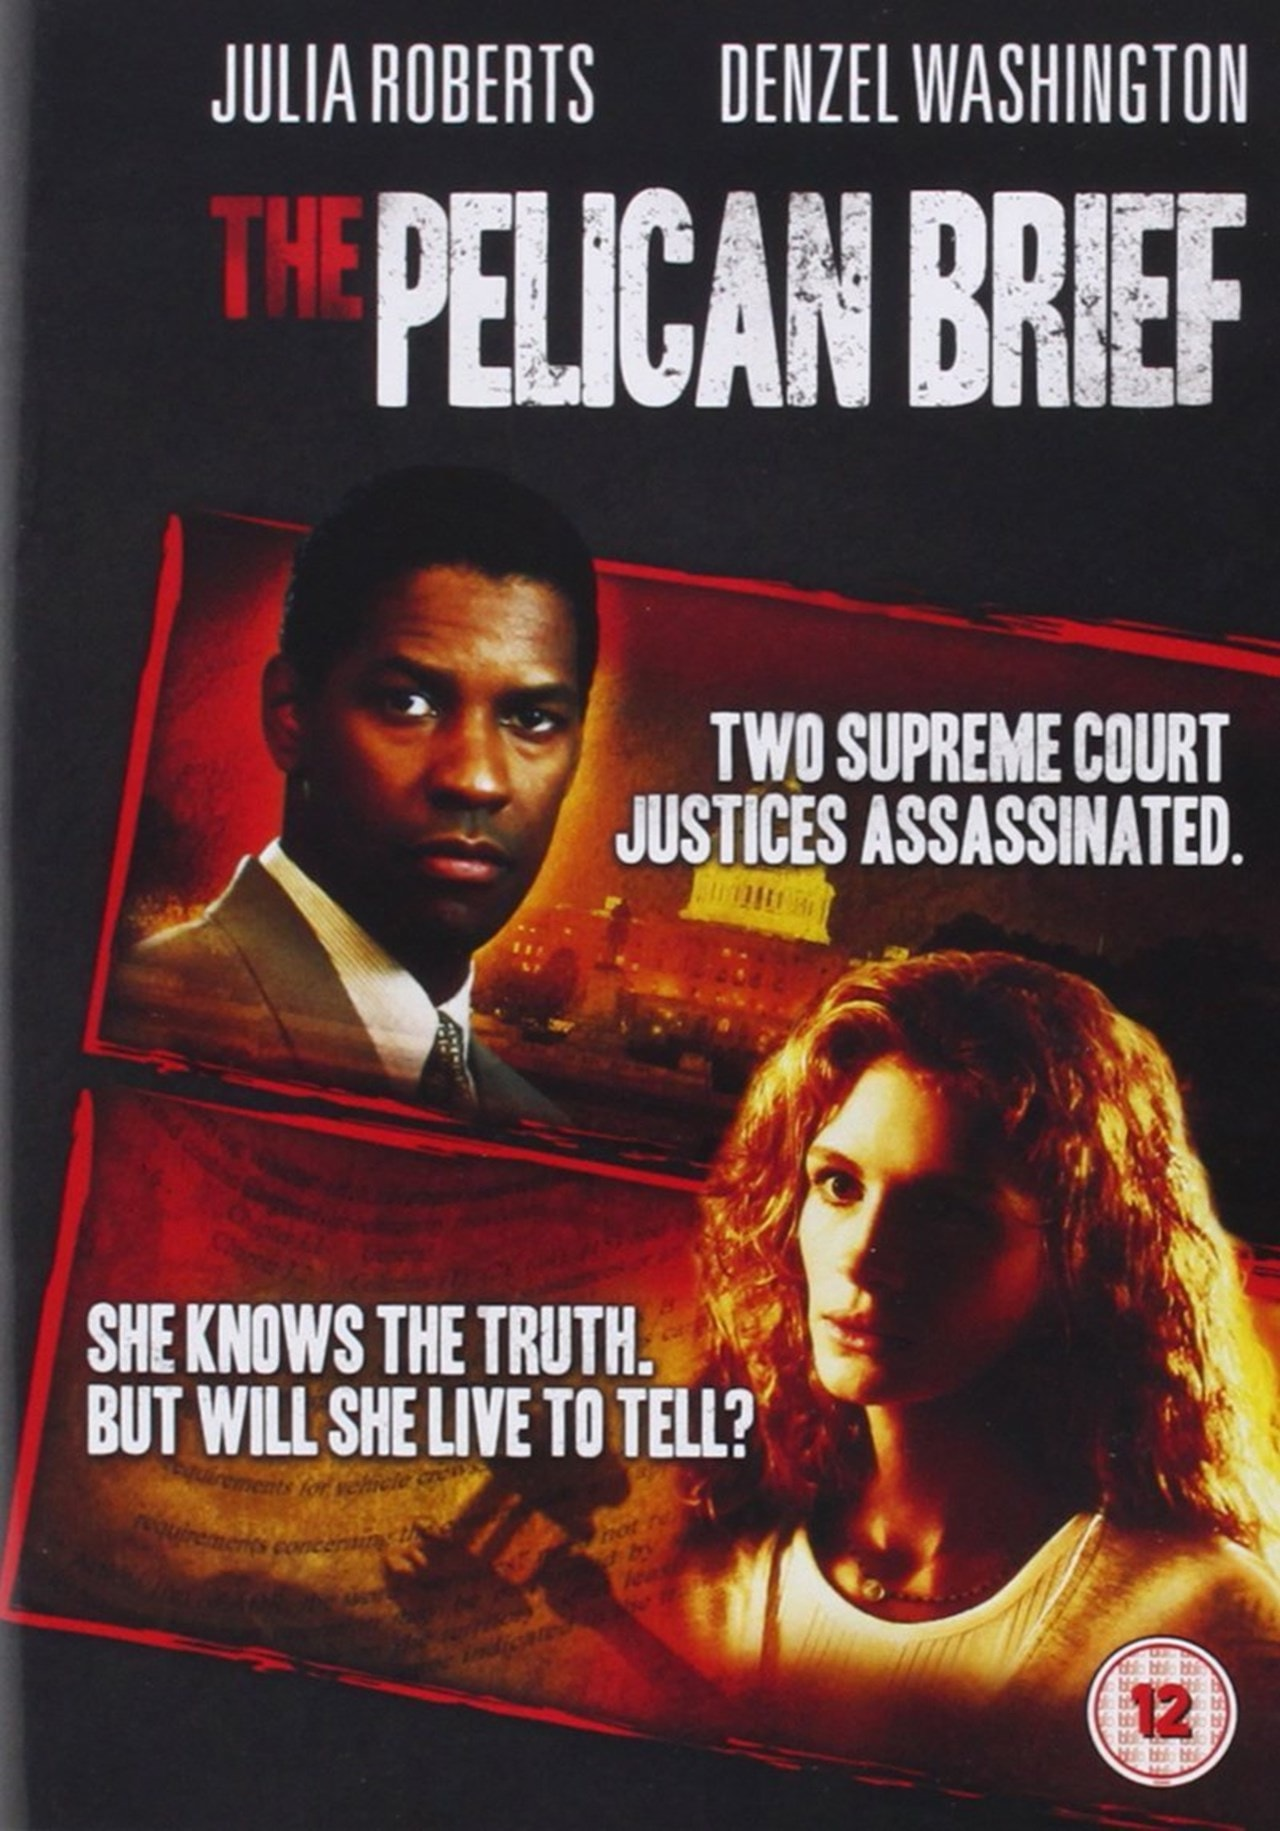 The Pelican Brief - 1